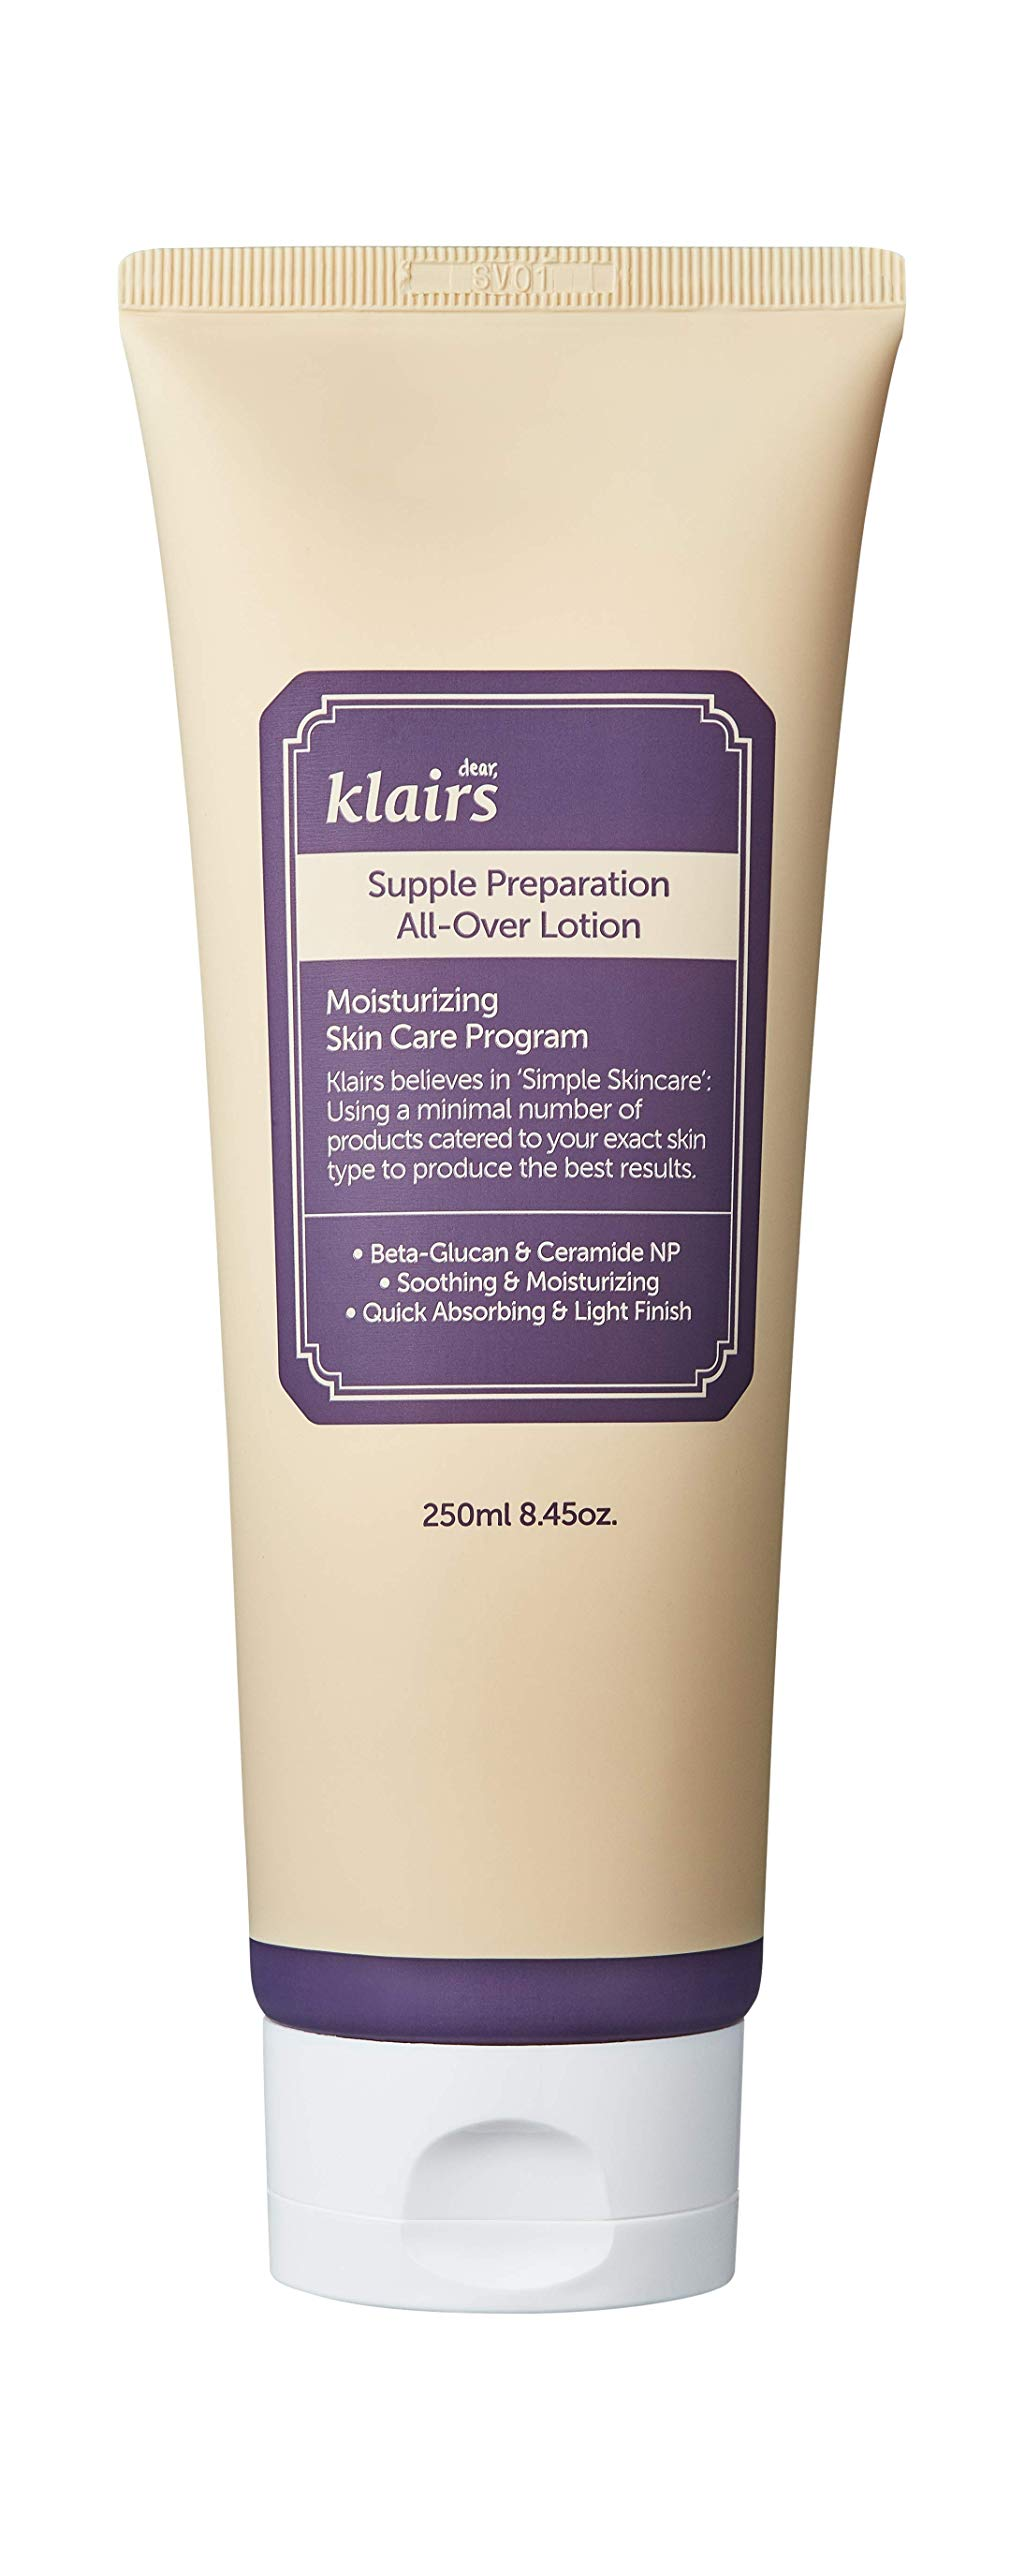 null - [KLAIRS] Supple Preparation All-over lotion, face and body moisturizer, 250ml, 8.45oz